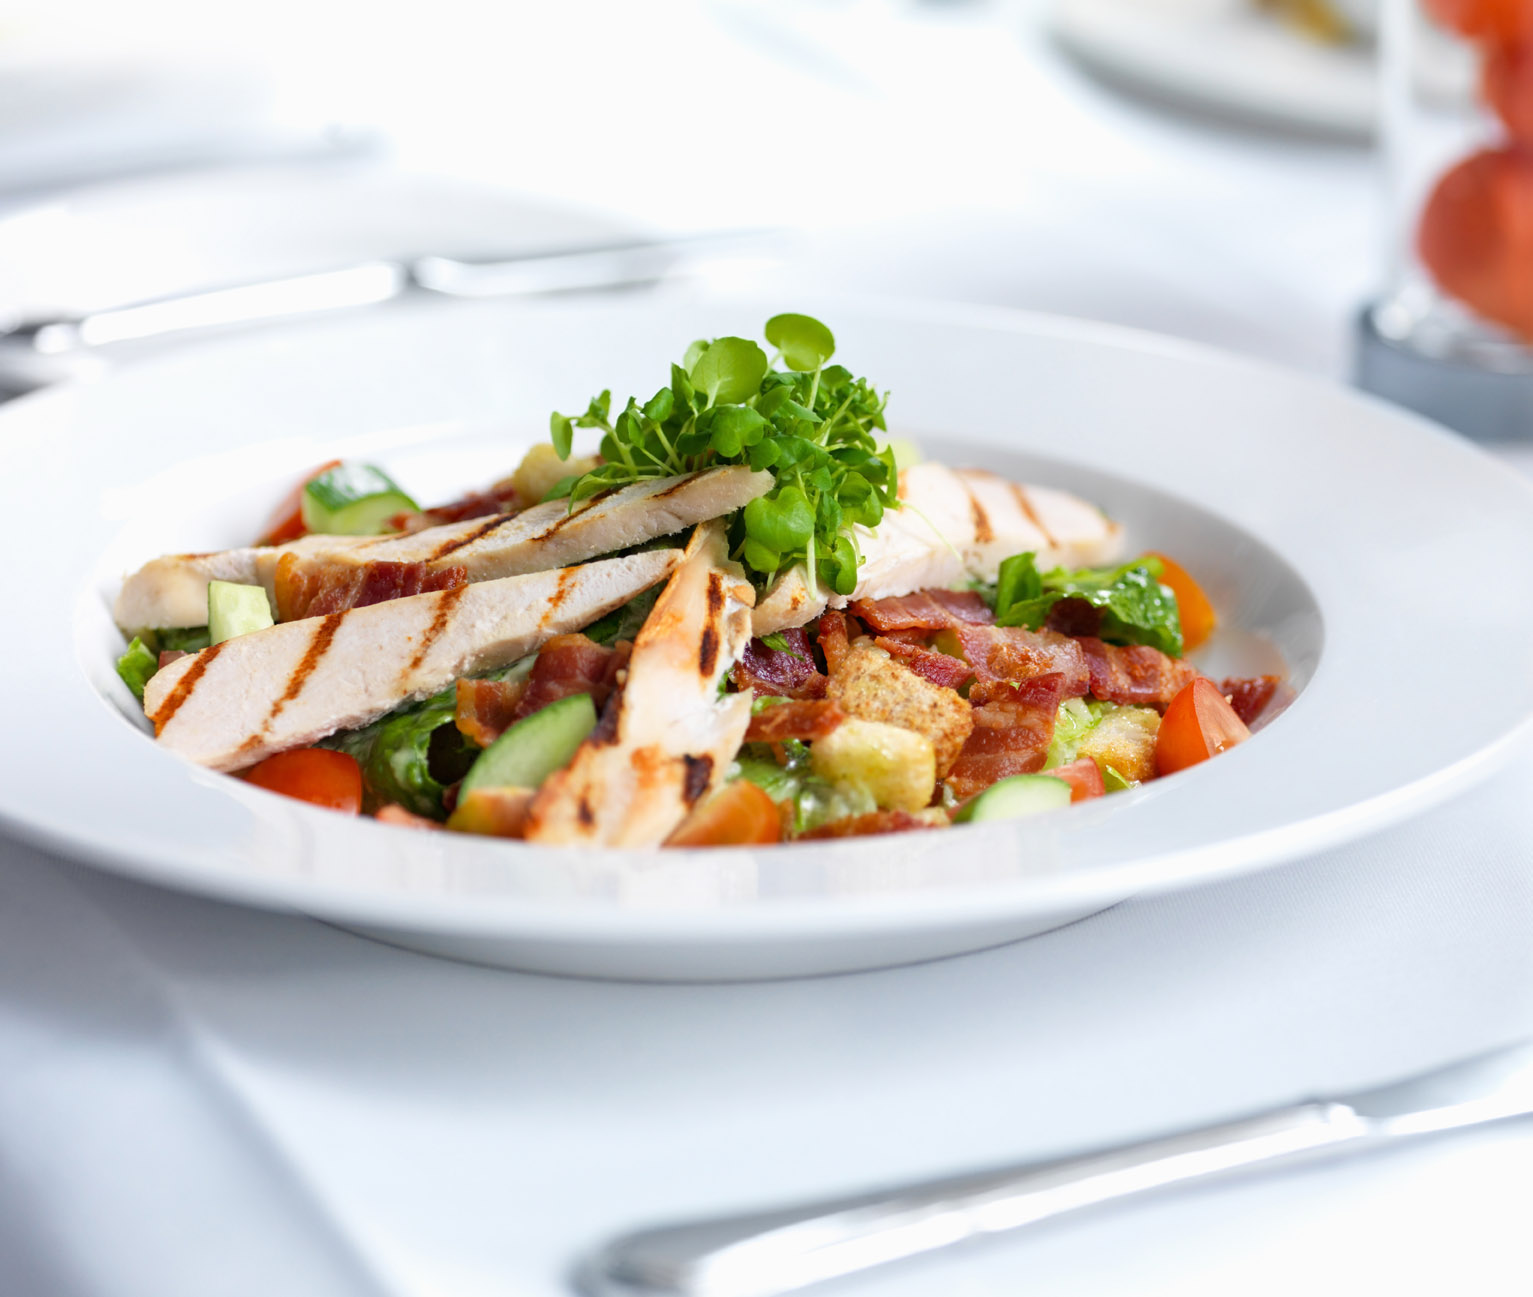 Is to enjoy your food eat less of the foods mentioned above and eat